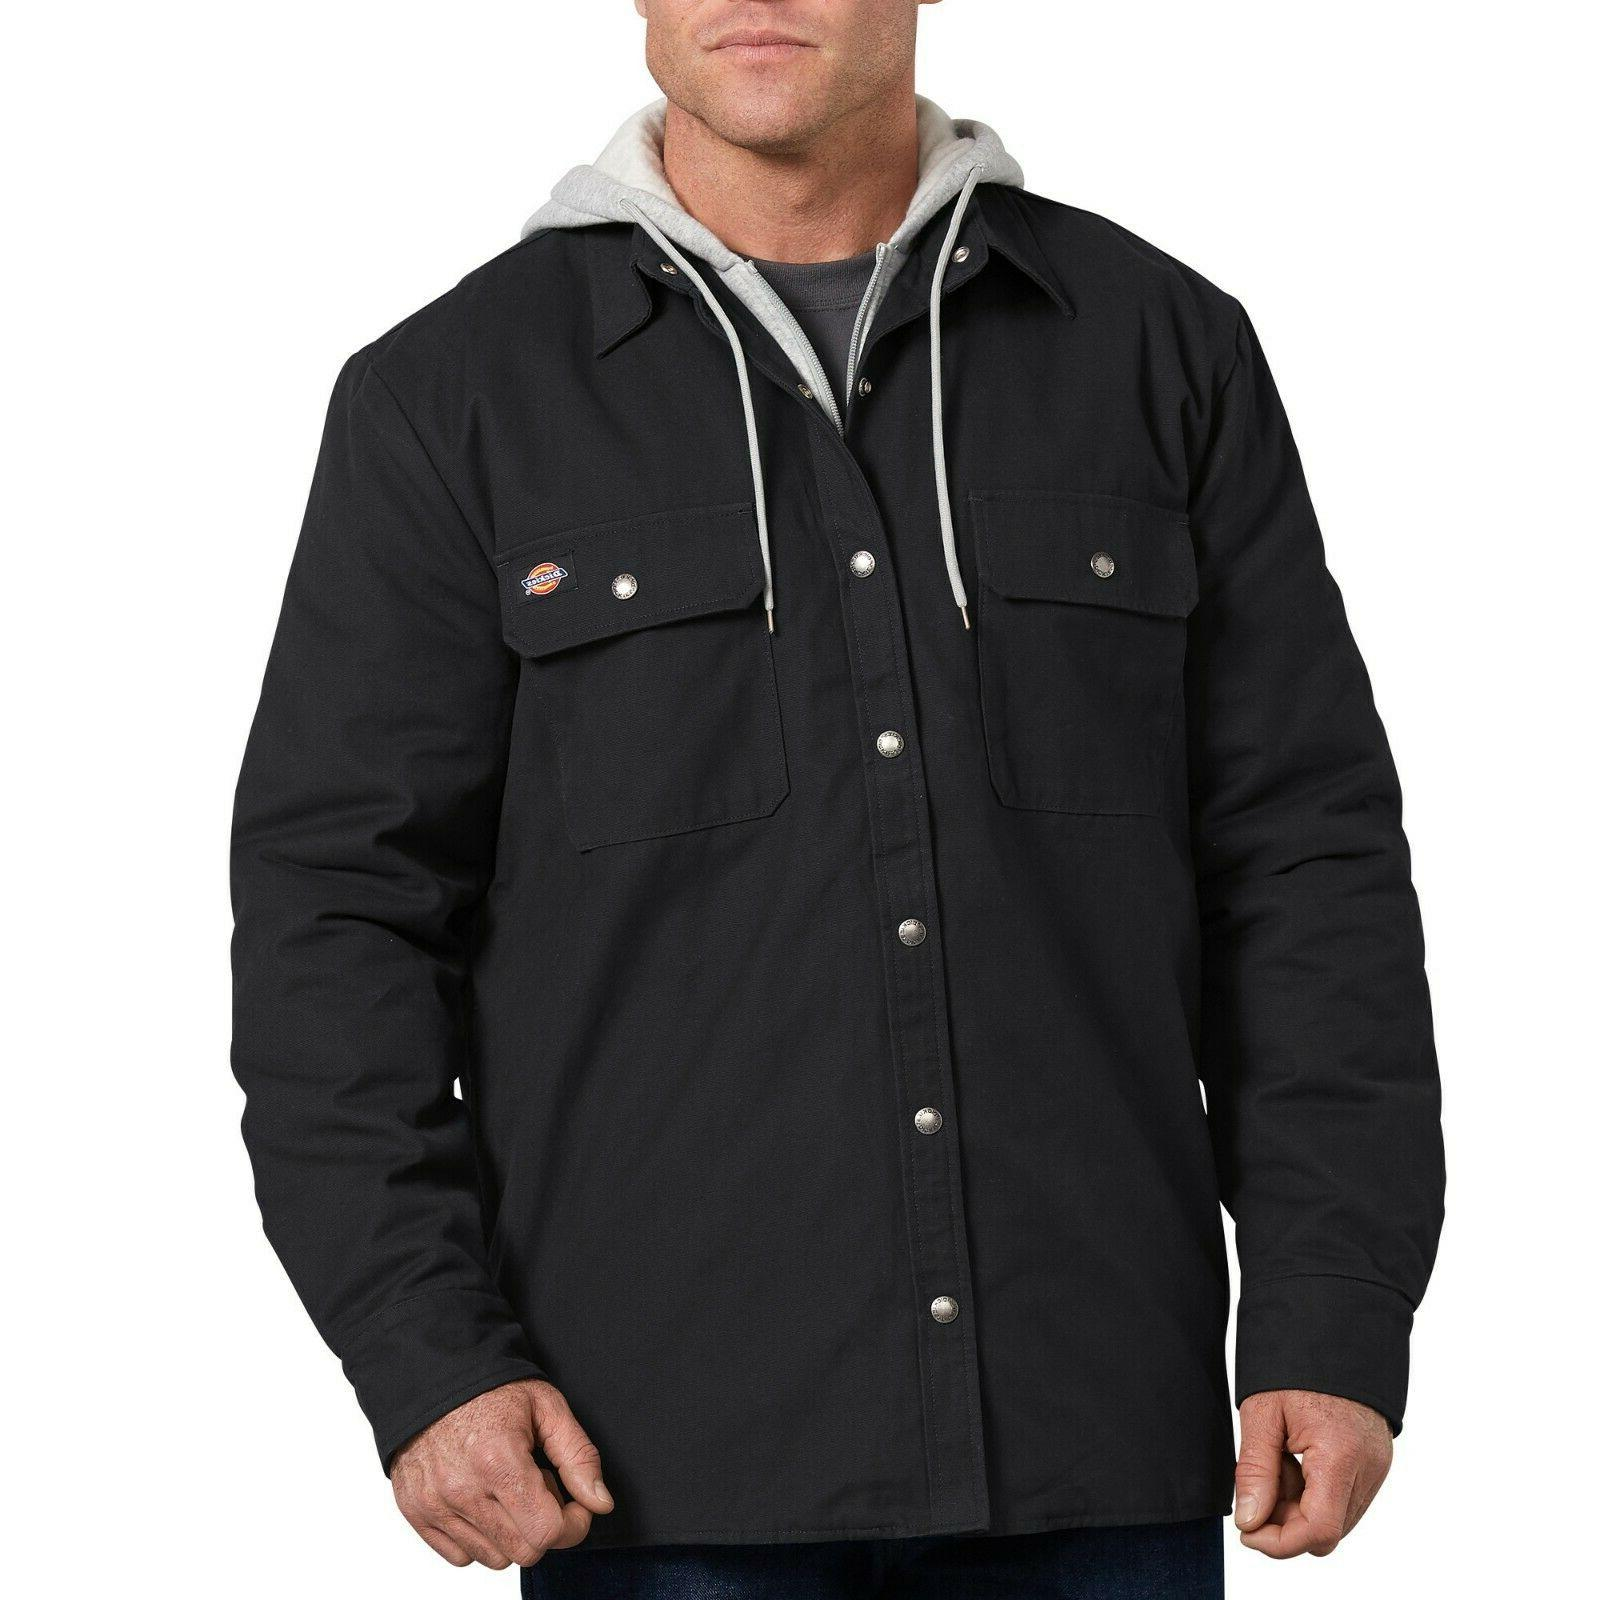 big and tall men heavy shirt jacket